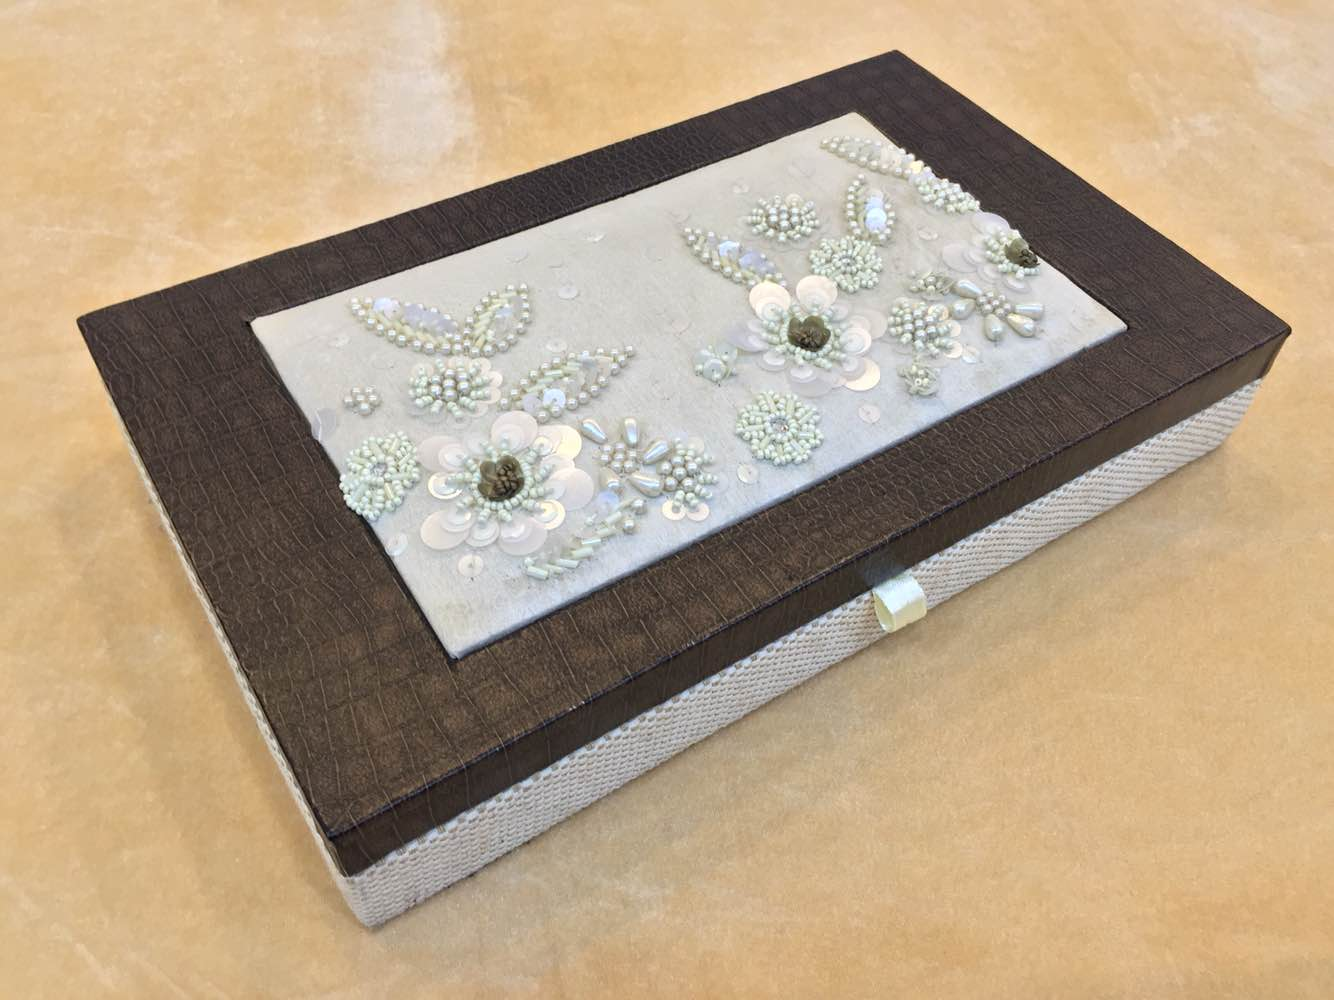 Beaded Dry Fruit Box  We are leading manufacturer, supplier and wholesaler of Beaded Dry Fruit Box